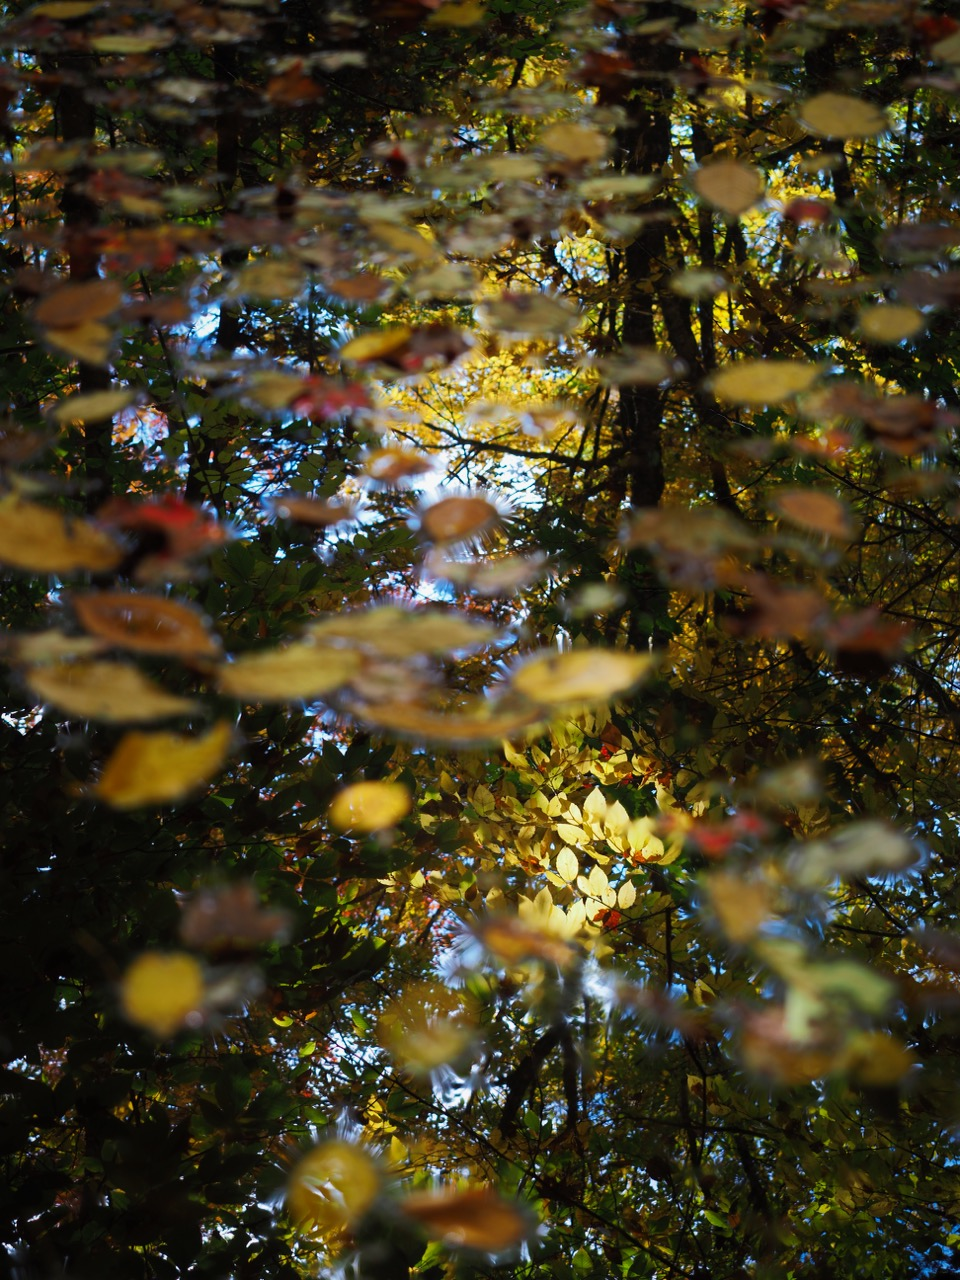 P5-Leaves reflected on water-PA100130.jpg